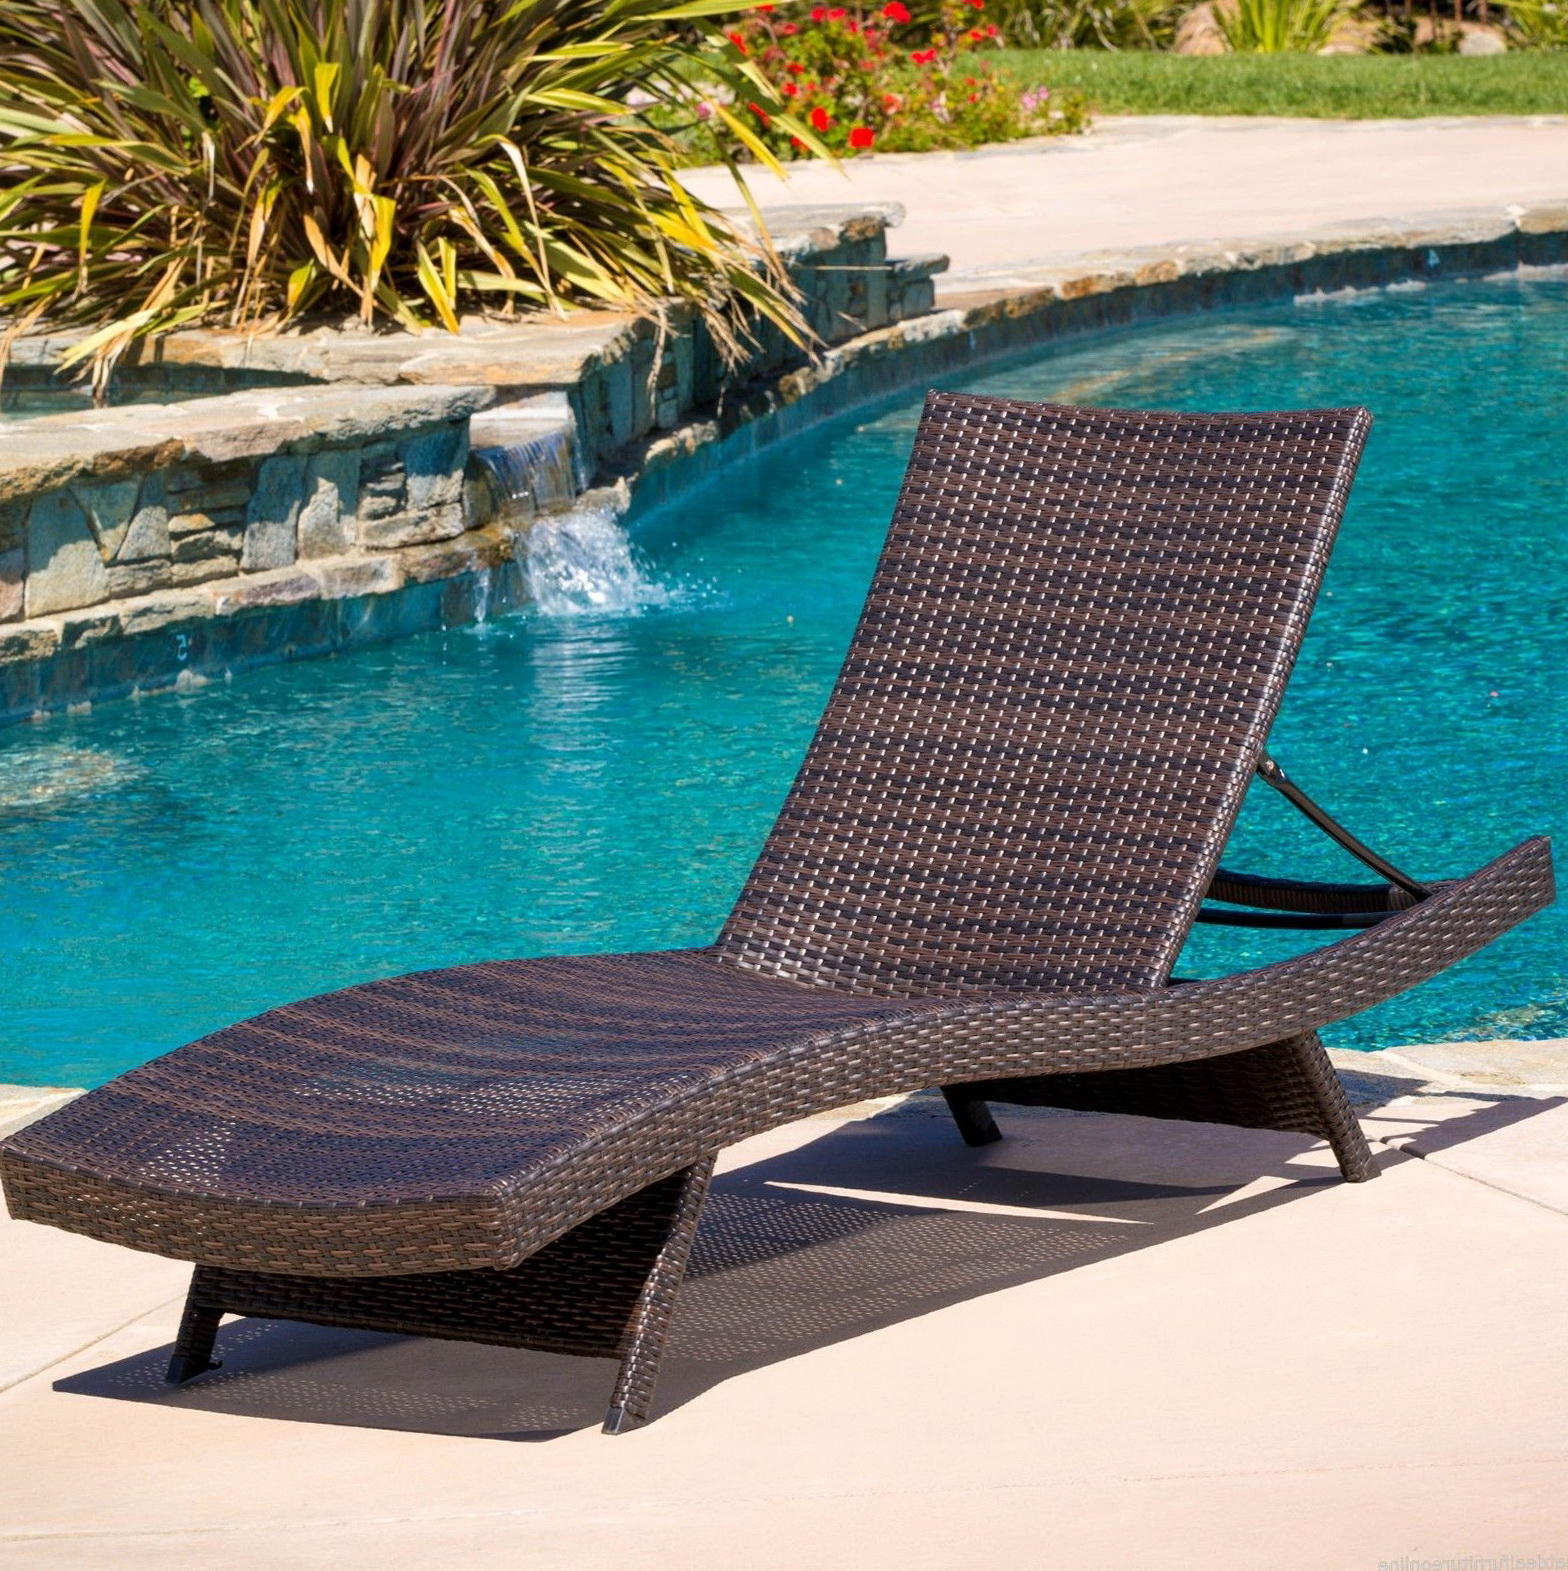 Swimming Pool Deck Chairs Home Design Ideas